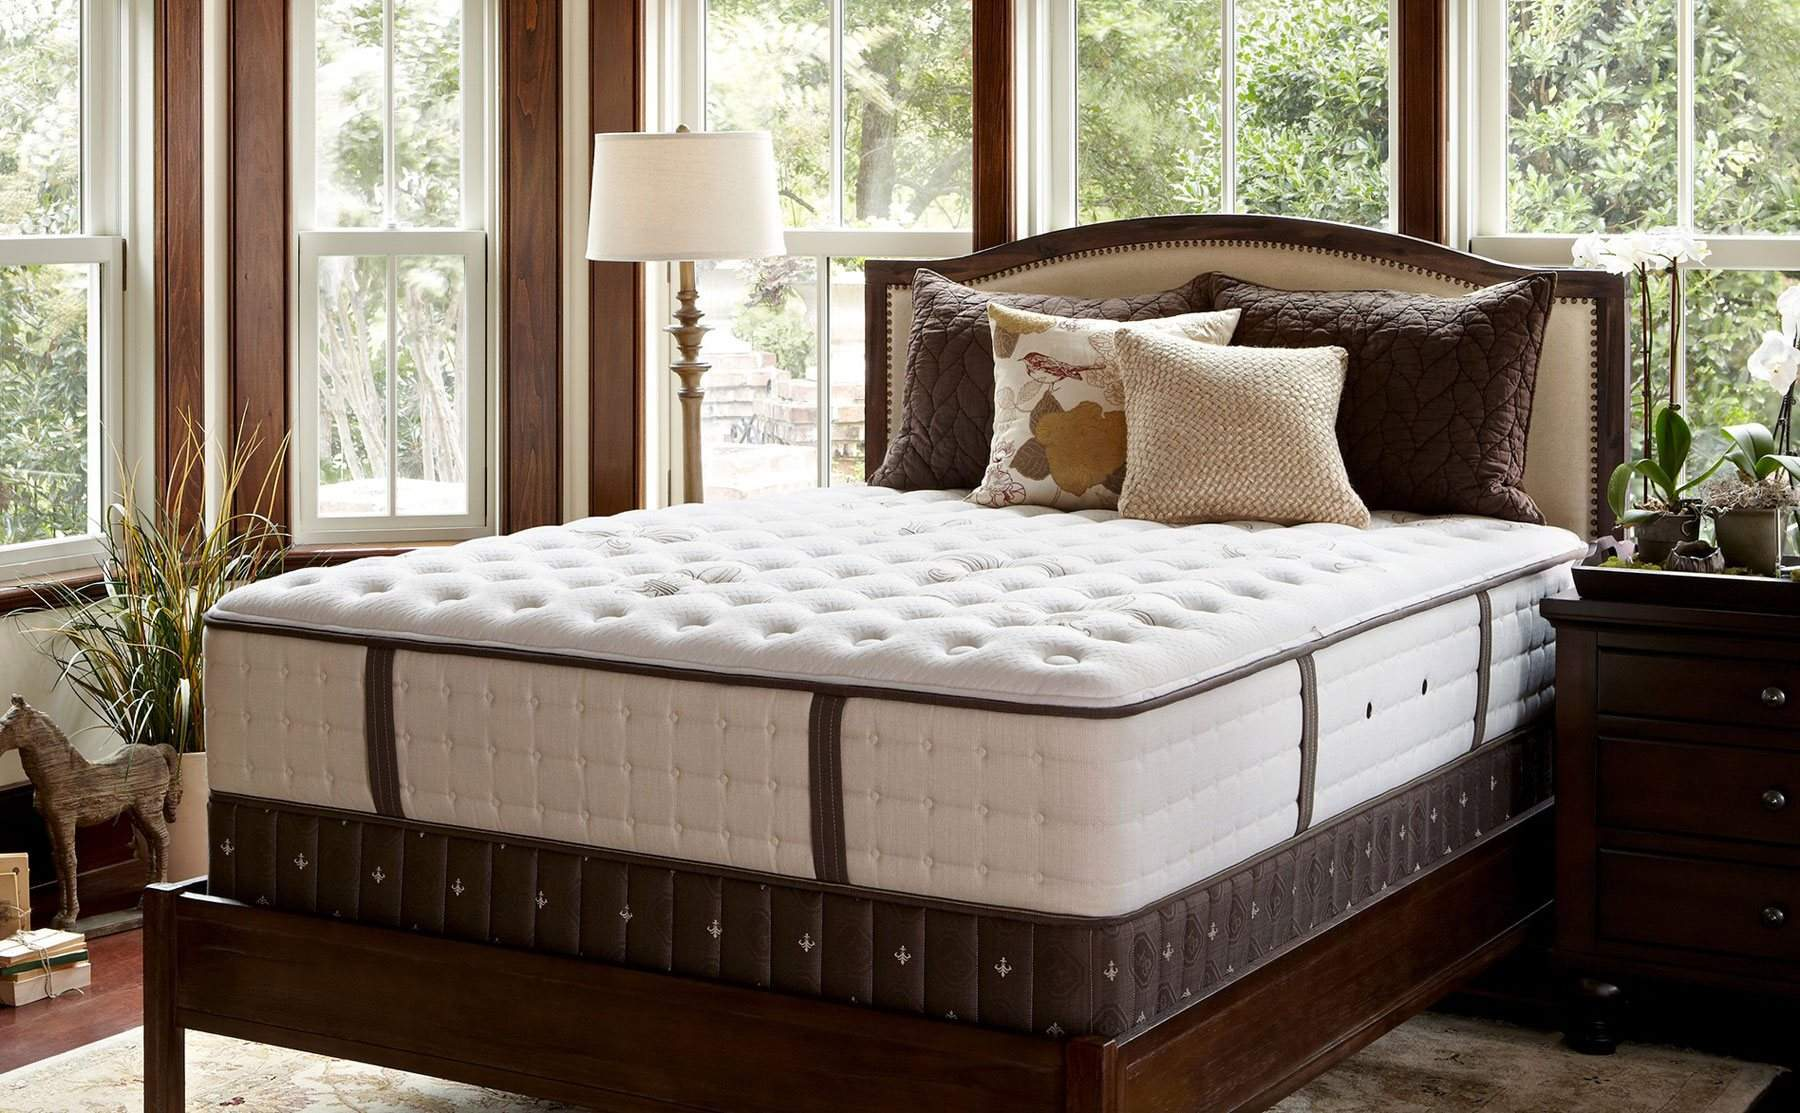 Sweet Dream Luxury Mattress Pu Foam Mattress In India Tirupati Foam Ltd Sweet Dream